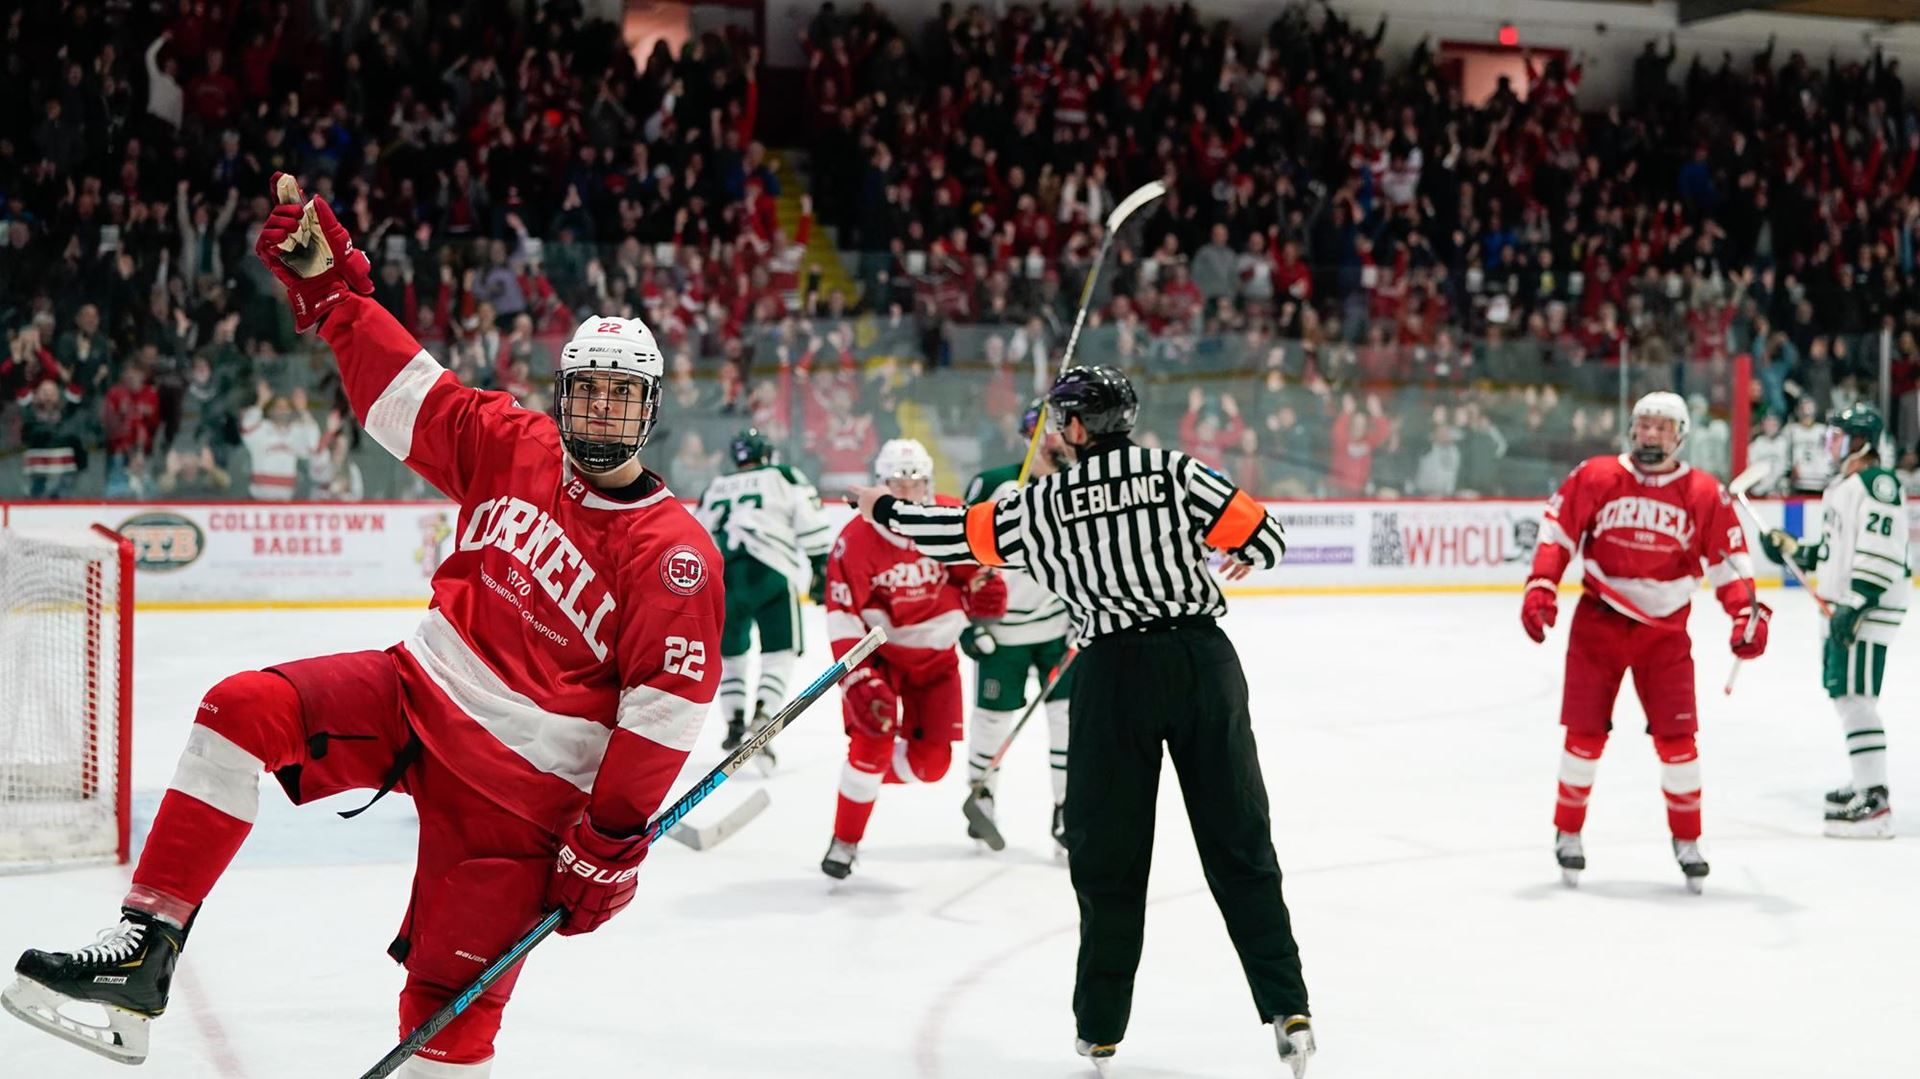 Cornell defeats Dartmouth, 3-2